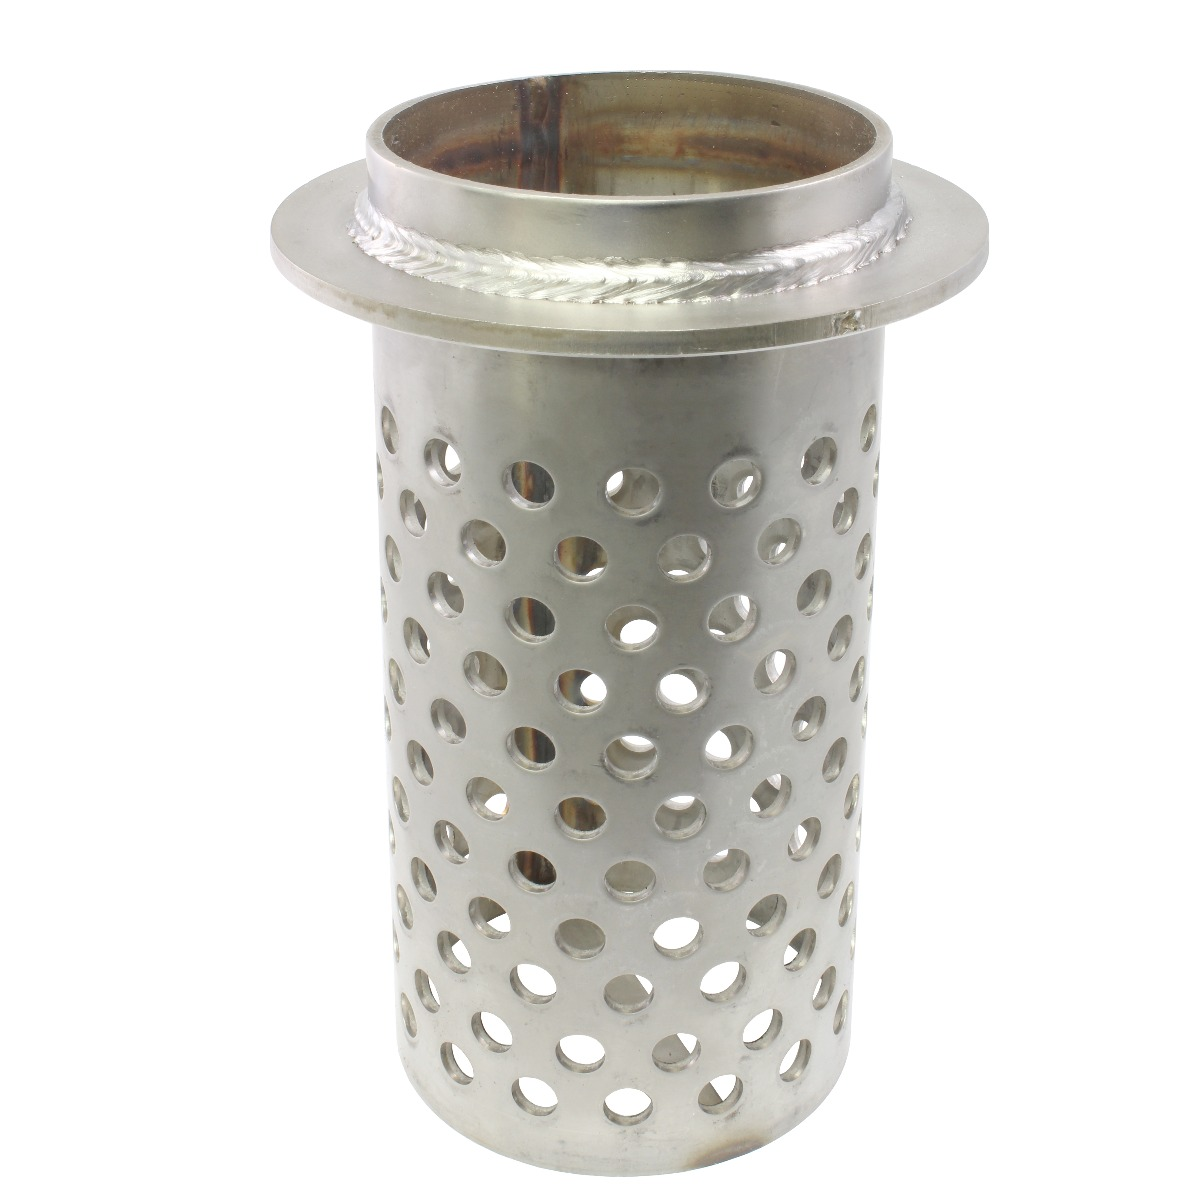 "Stainless Steel Perforated Flask - 4"" x 7"""